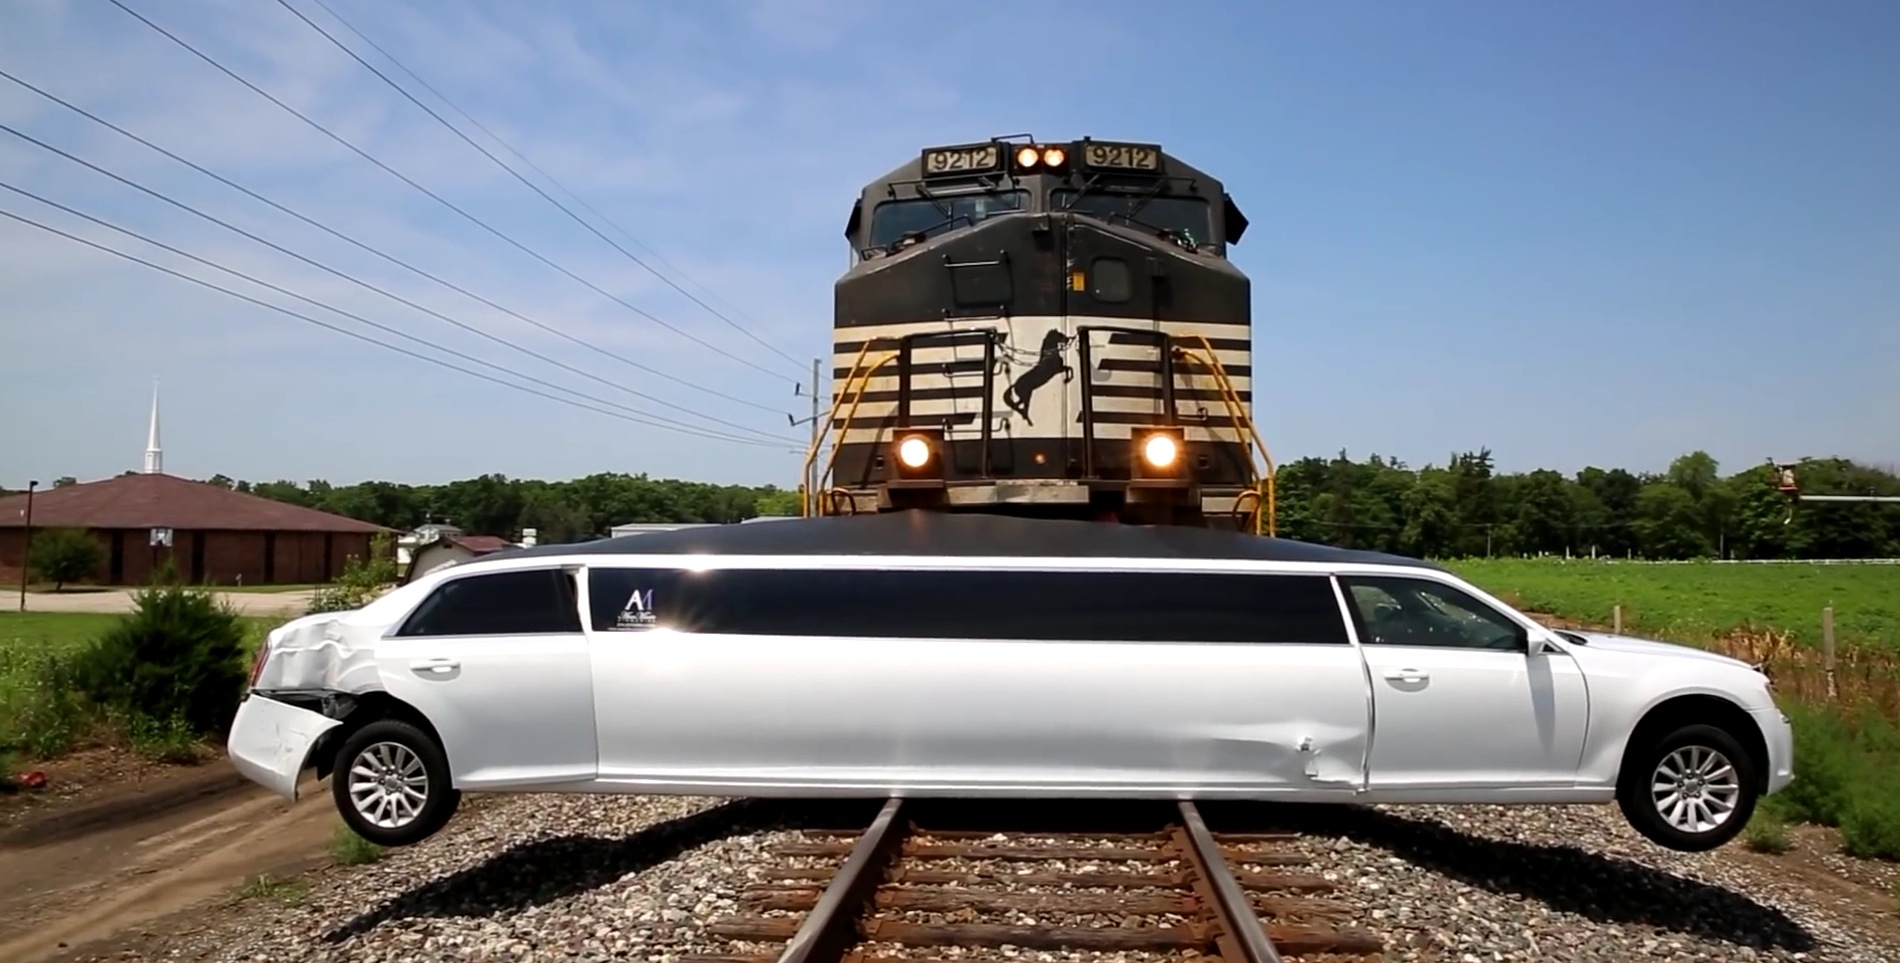 Chrysler 300 Limo Suspended on Tracks Makes For a Brutal Train ...